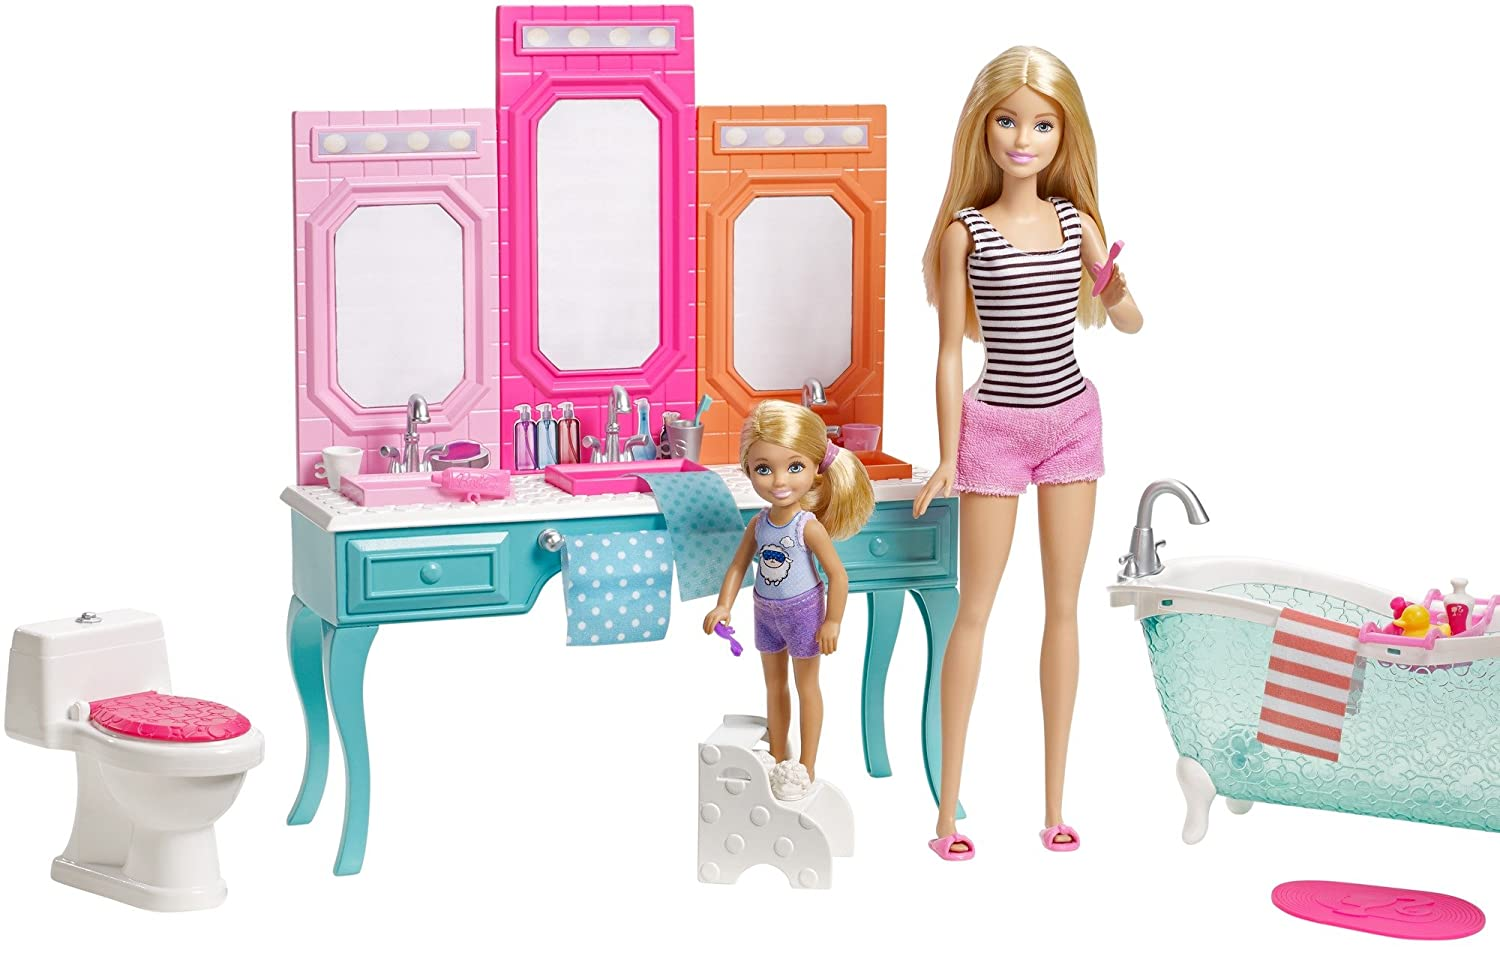 amazon com barbie chelsea bathroom playset toys games rh amazon com